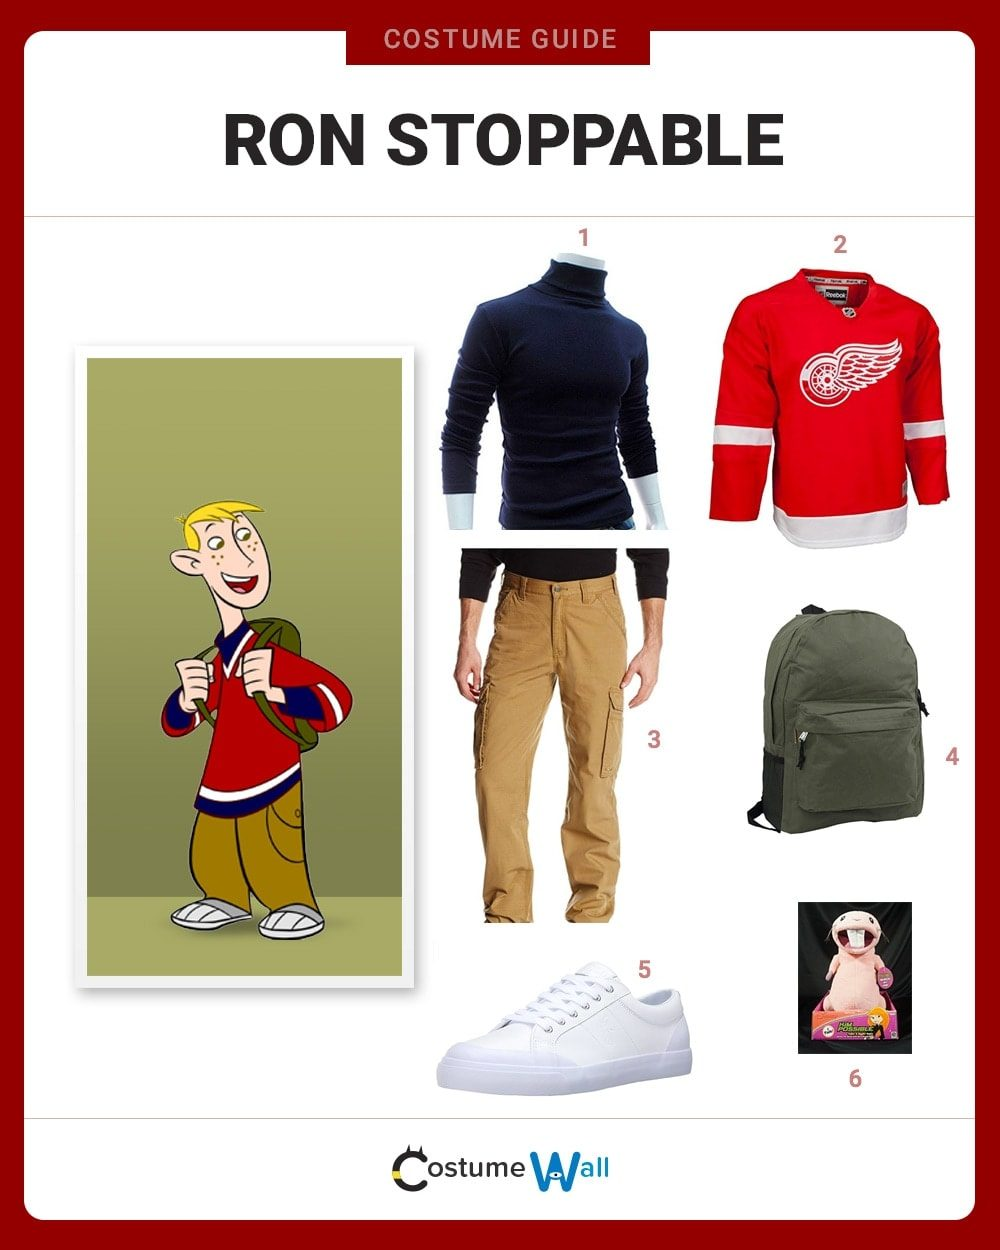 Ron Stoppable Costume Guide